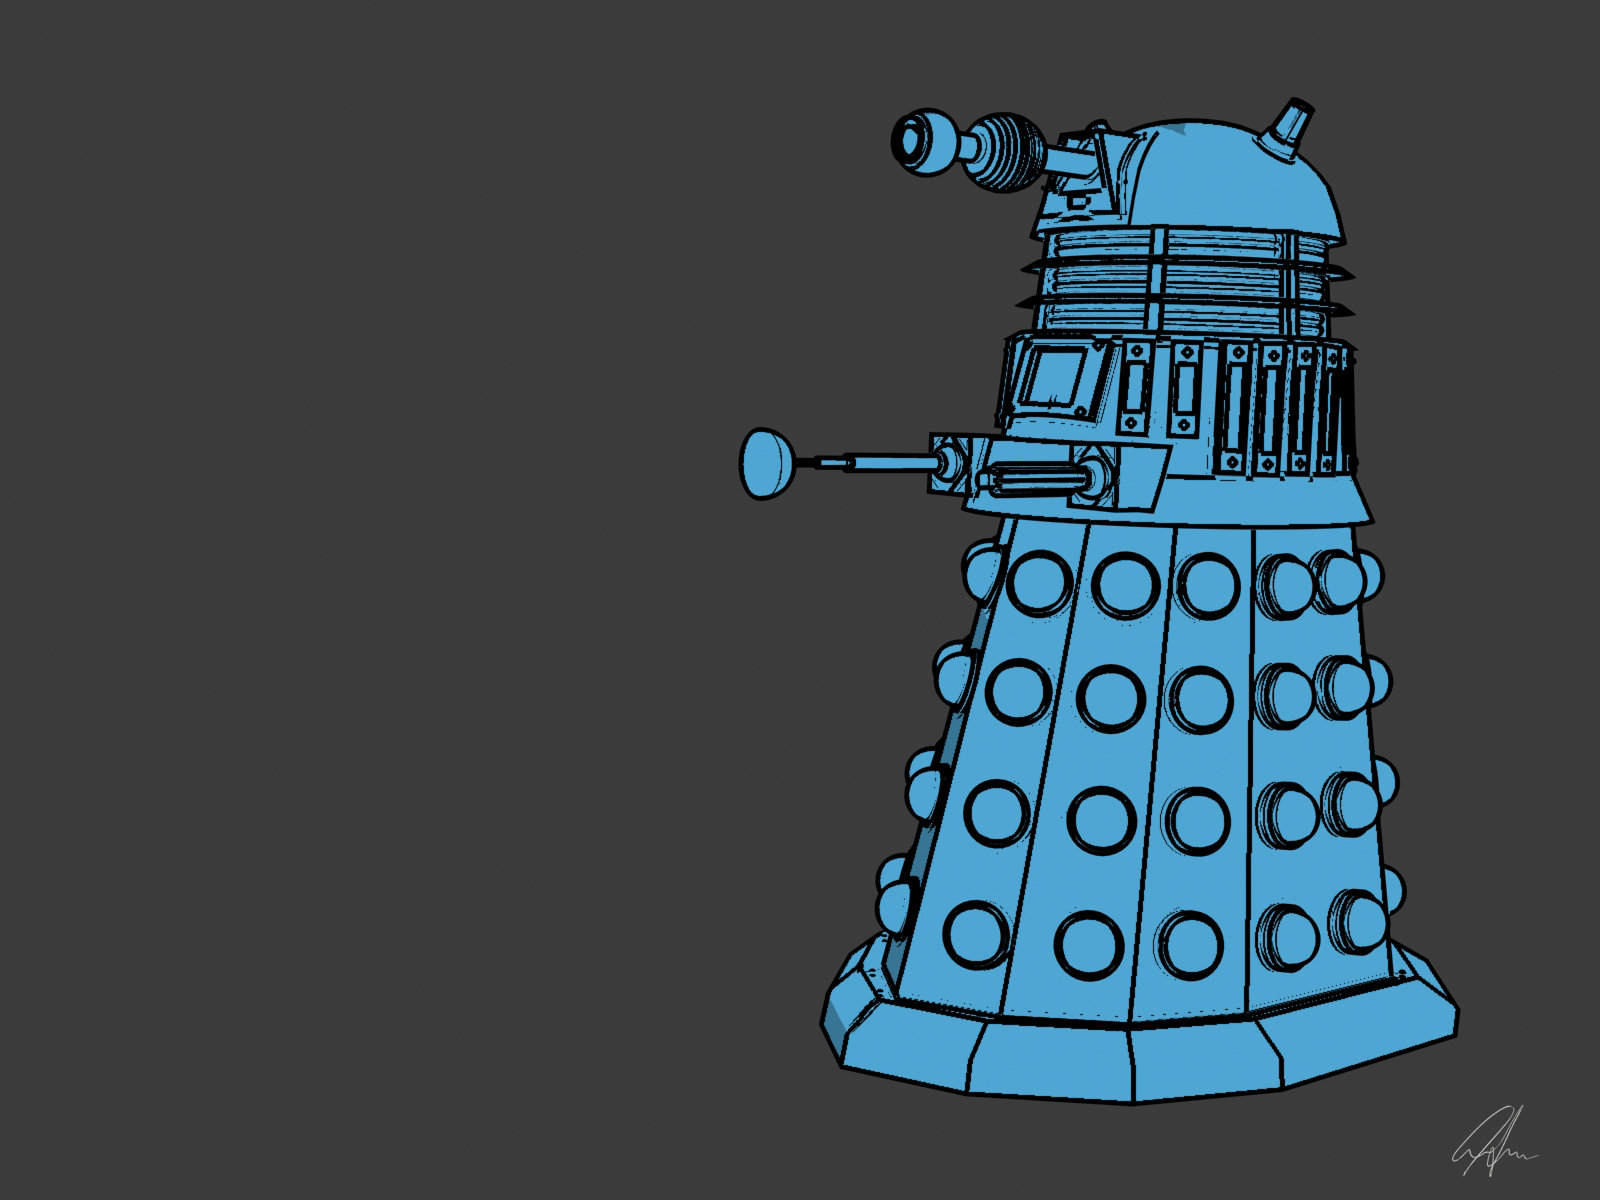 Free Download Pics More For Doctor Who Fans Dalek